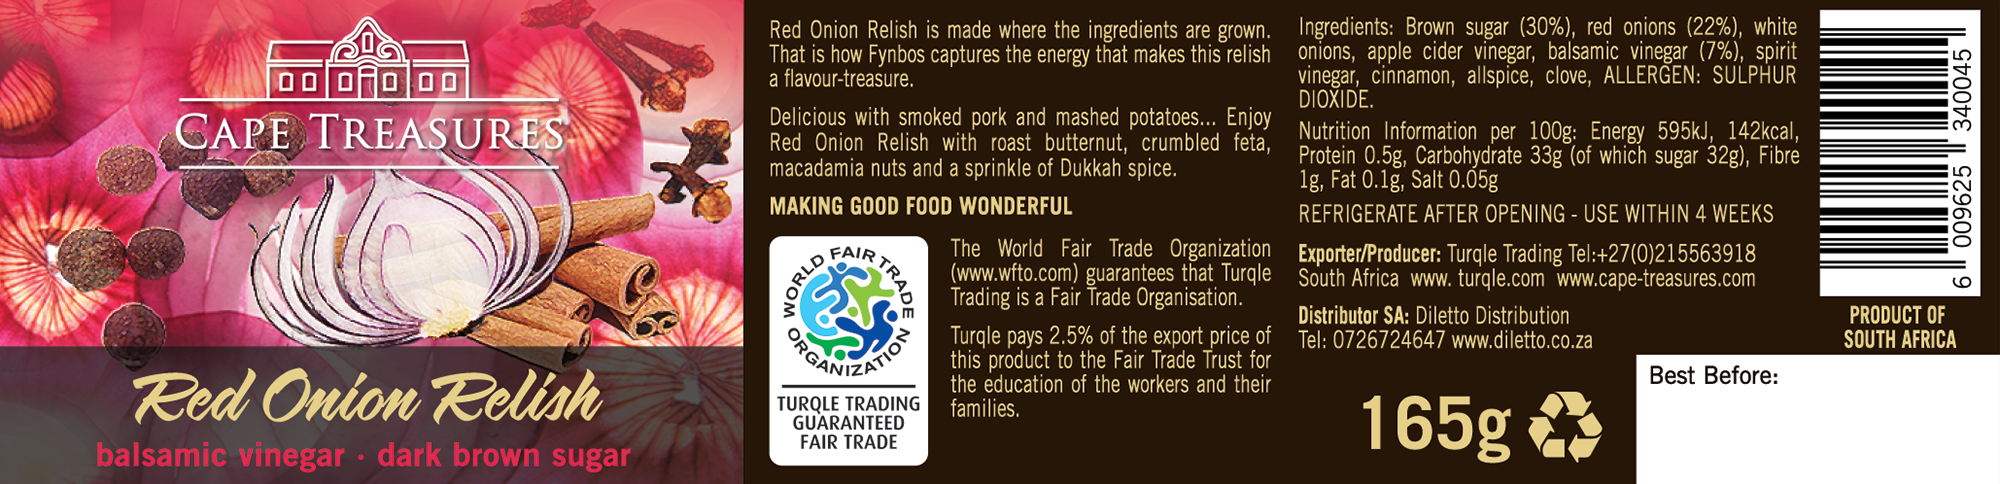 Product label of Cape Treasures Red Onion Relish